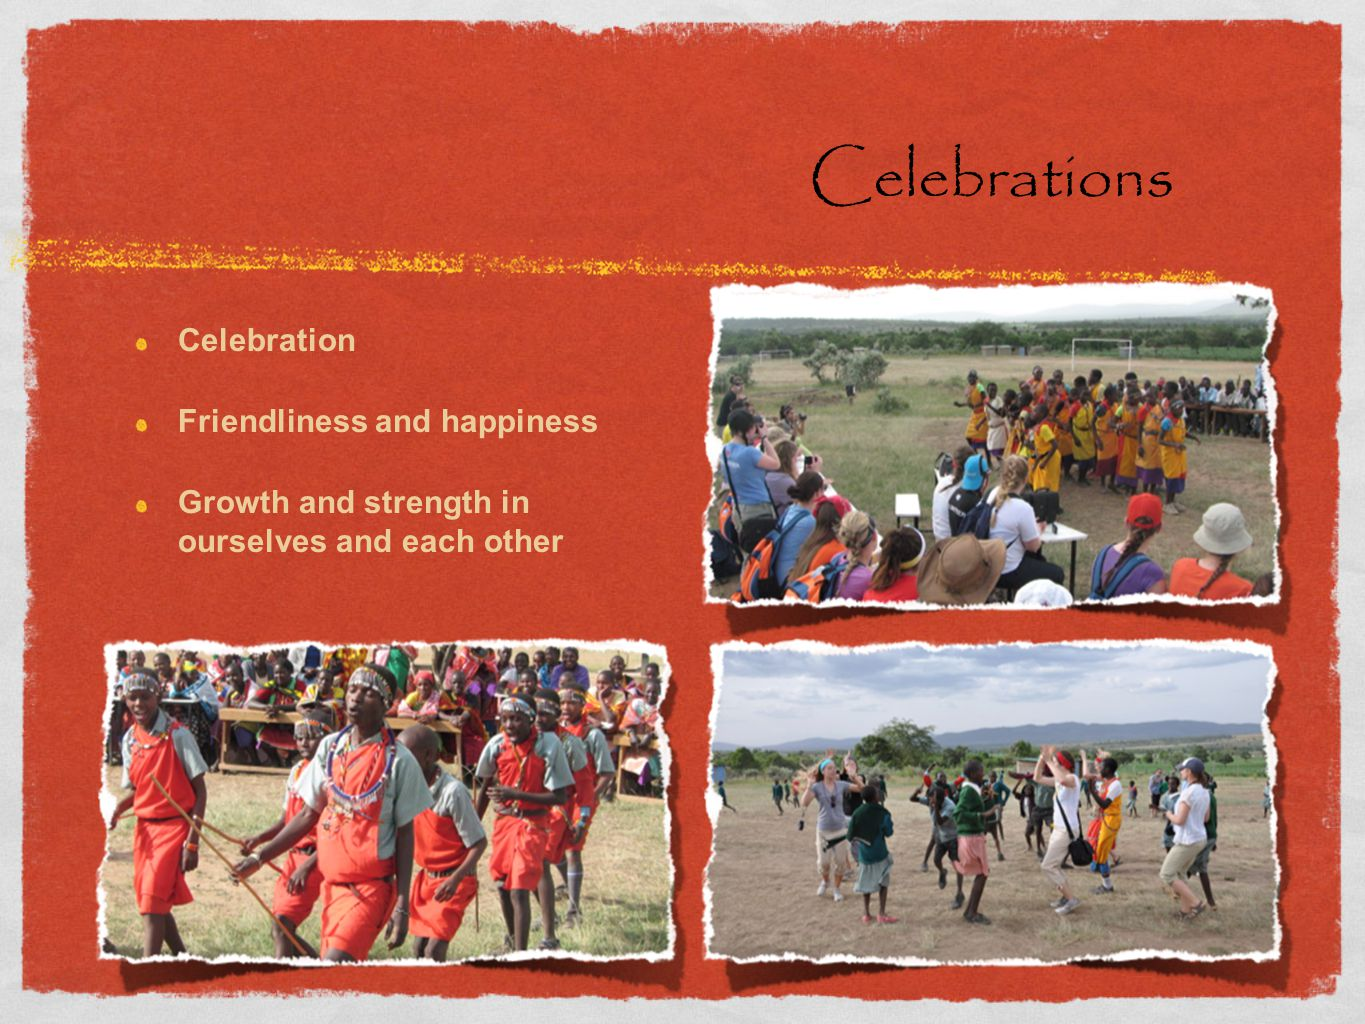 Celebrations Celebration Friendliness and happiness Growth and strength in ourselves and each other